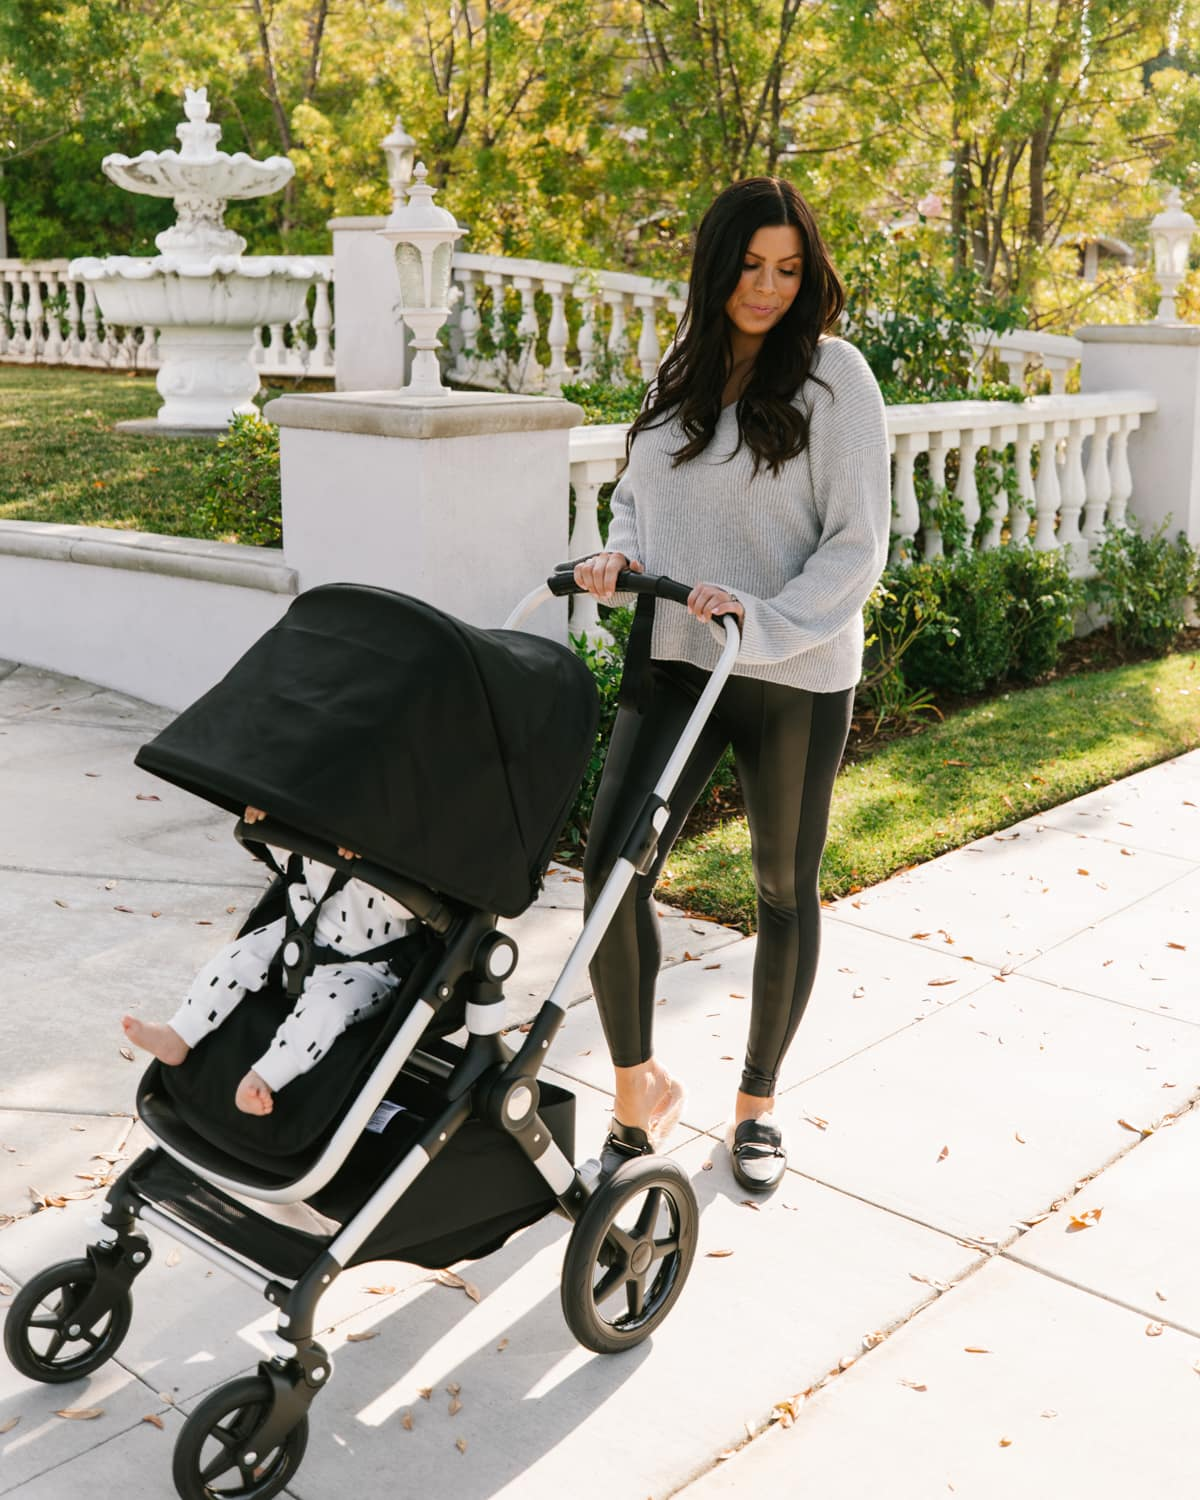 bugaboo stroller review